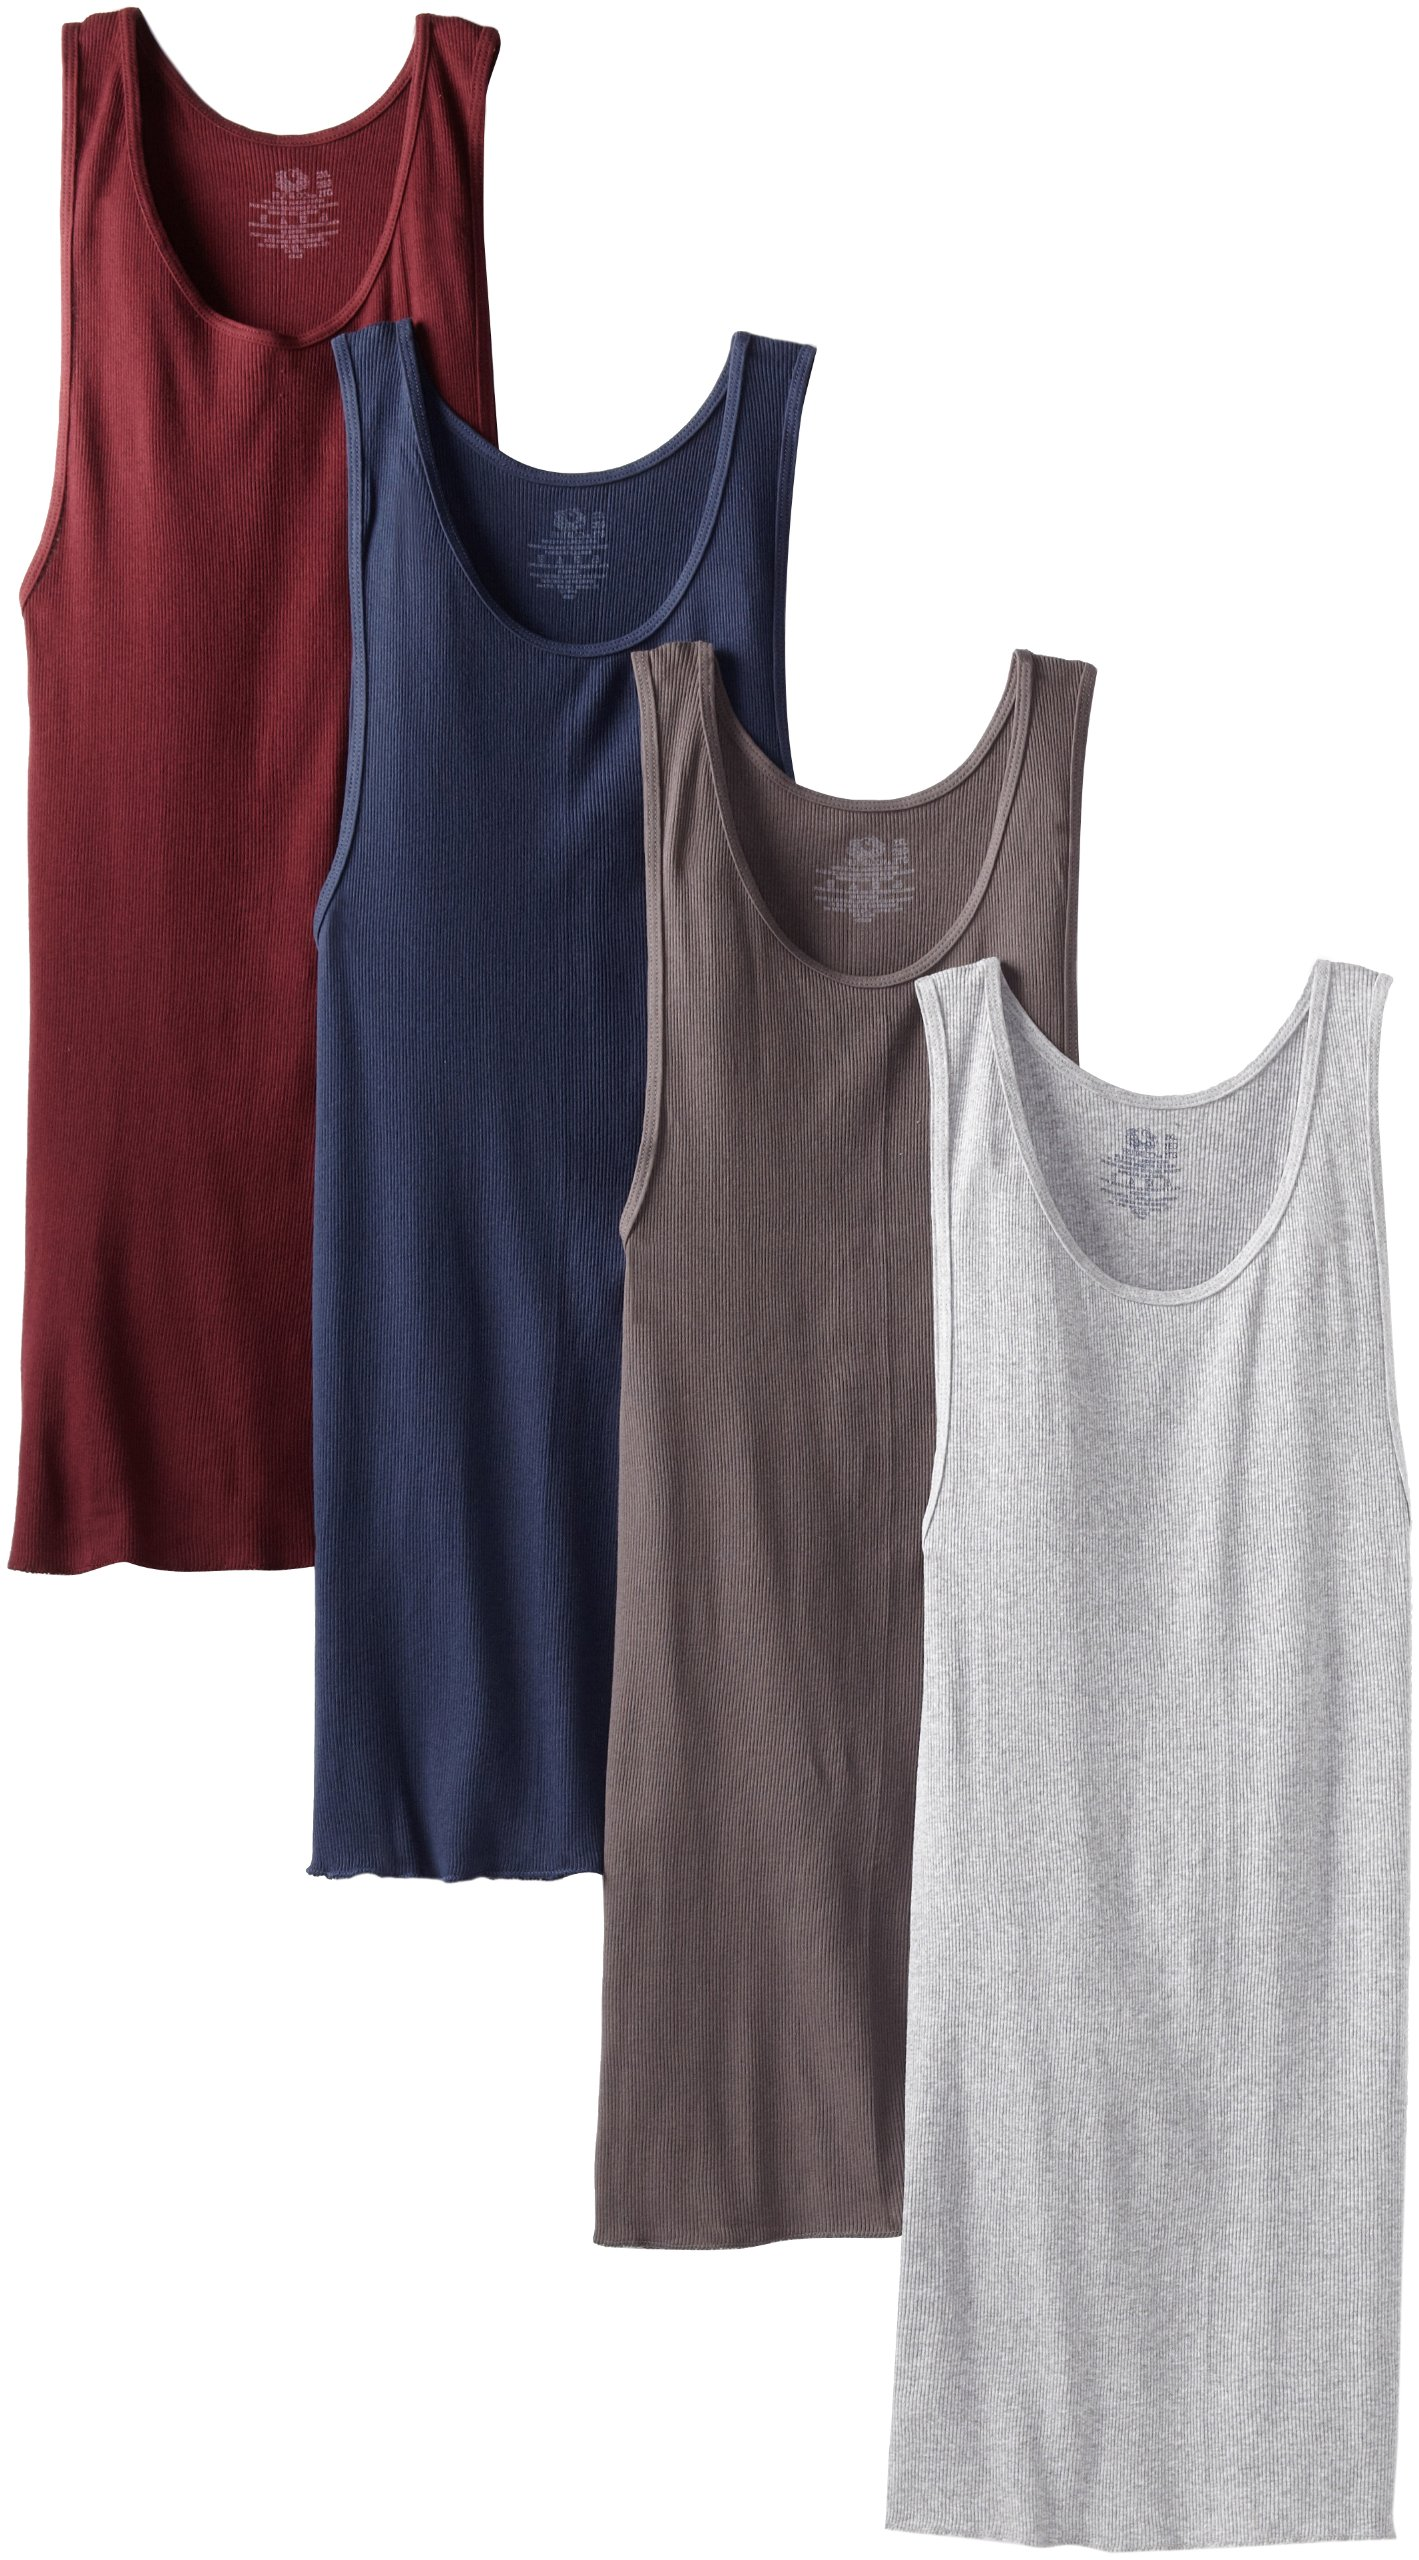 Fruit of the Loom Men's A-Shirt (Pack of 4), Assorted, XXX-Large